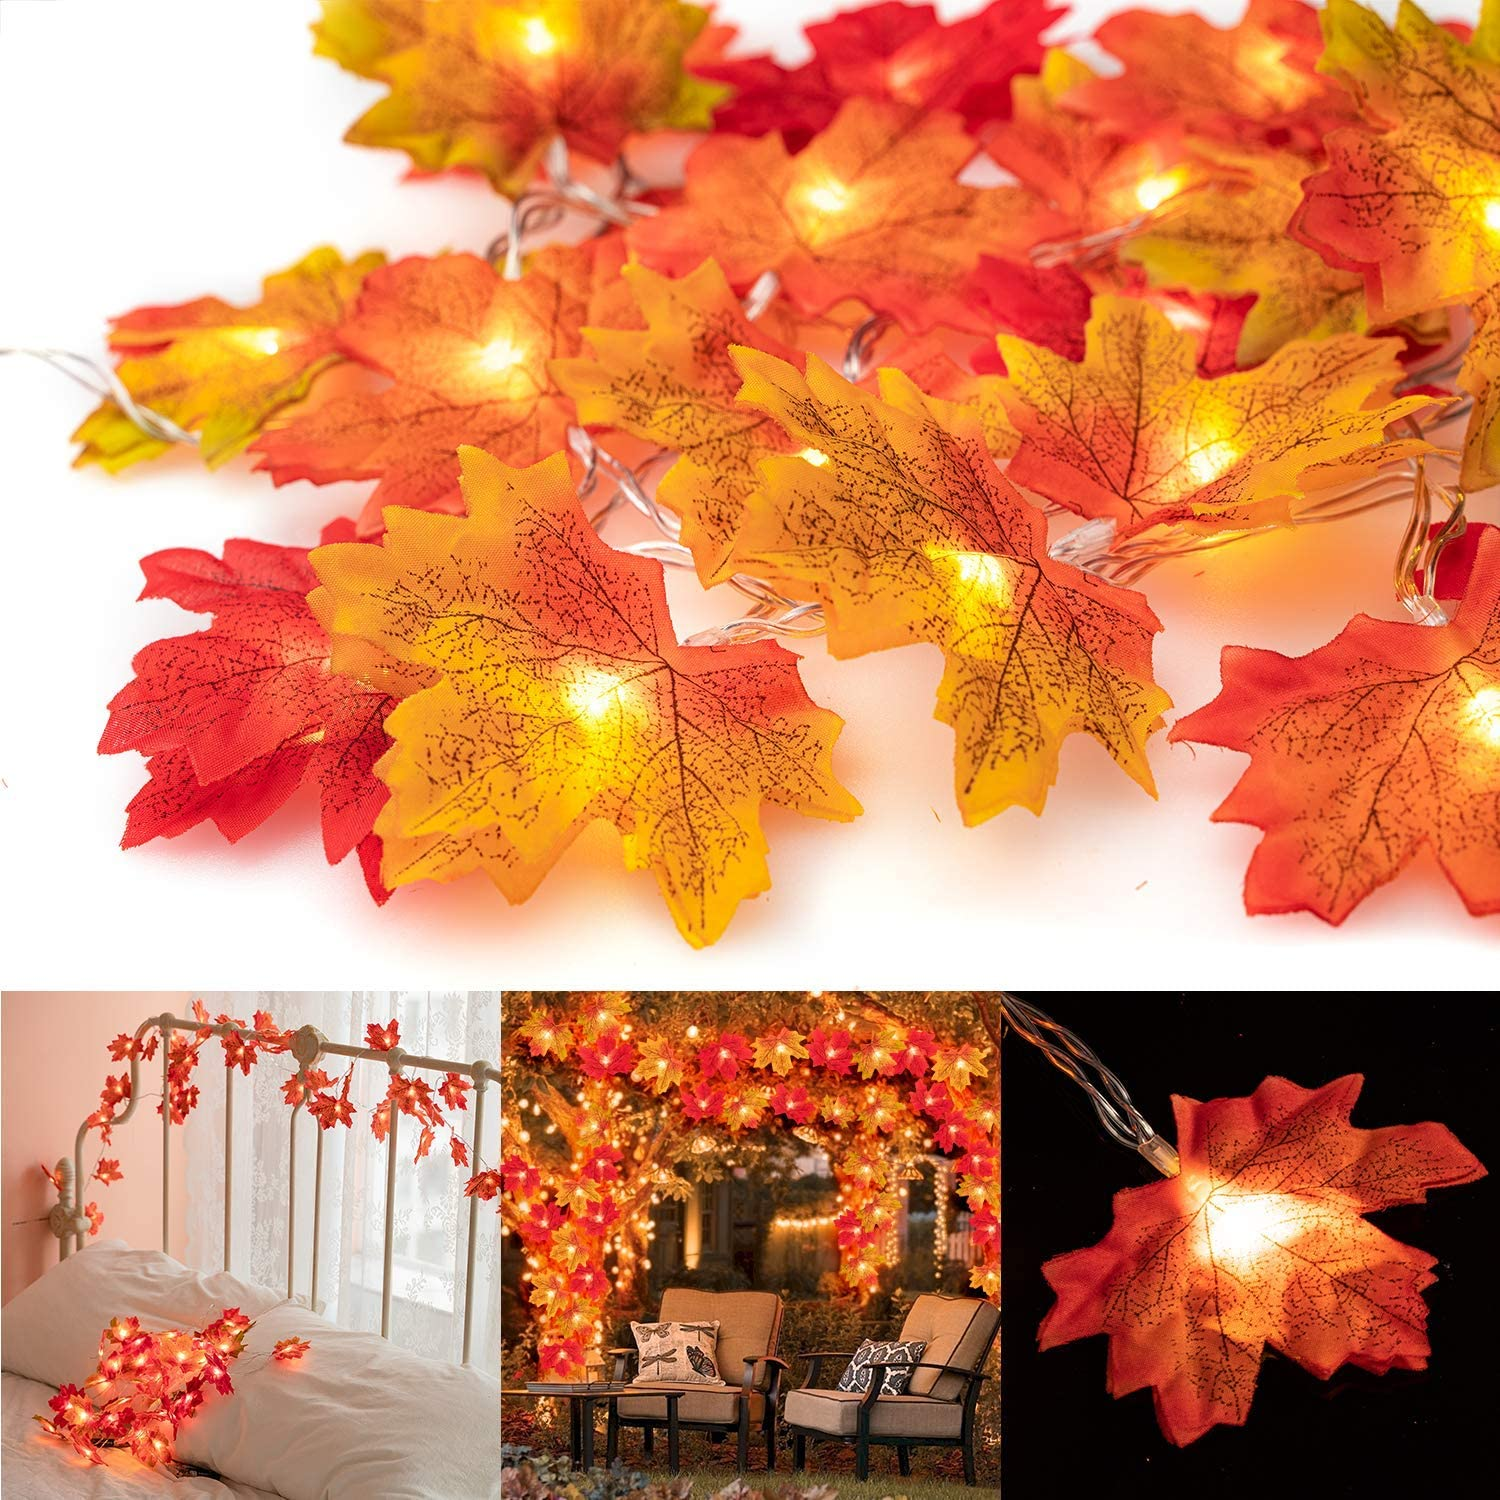 MUSCCCM String Lights Maple Leaf Light Twinkle Hanging Lighting Decorations for Indoor Outdoor Garden Halloween Thanksgiving Christmas Party Décor Gradient Color(20 Lights)